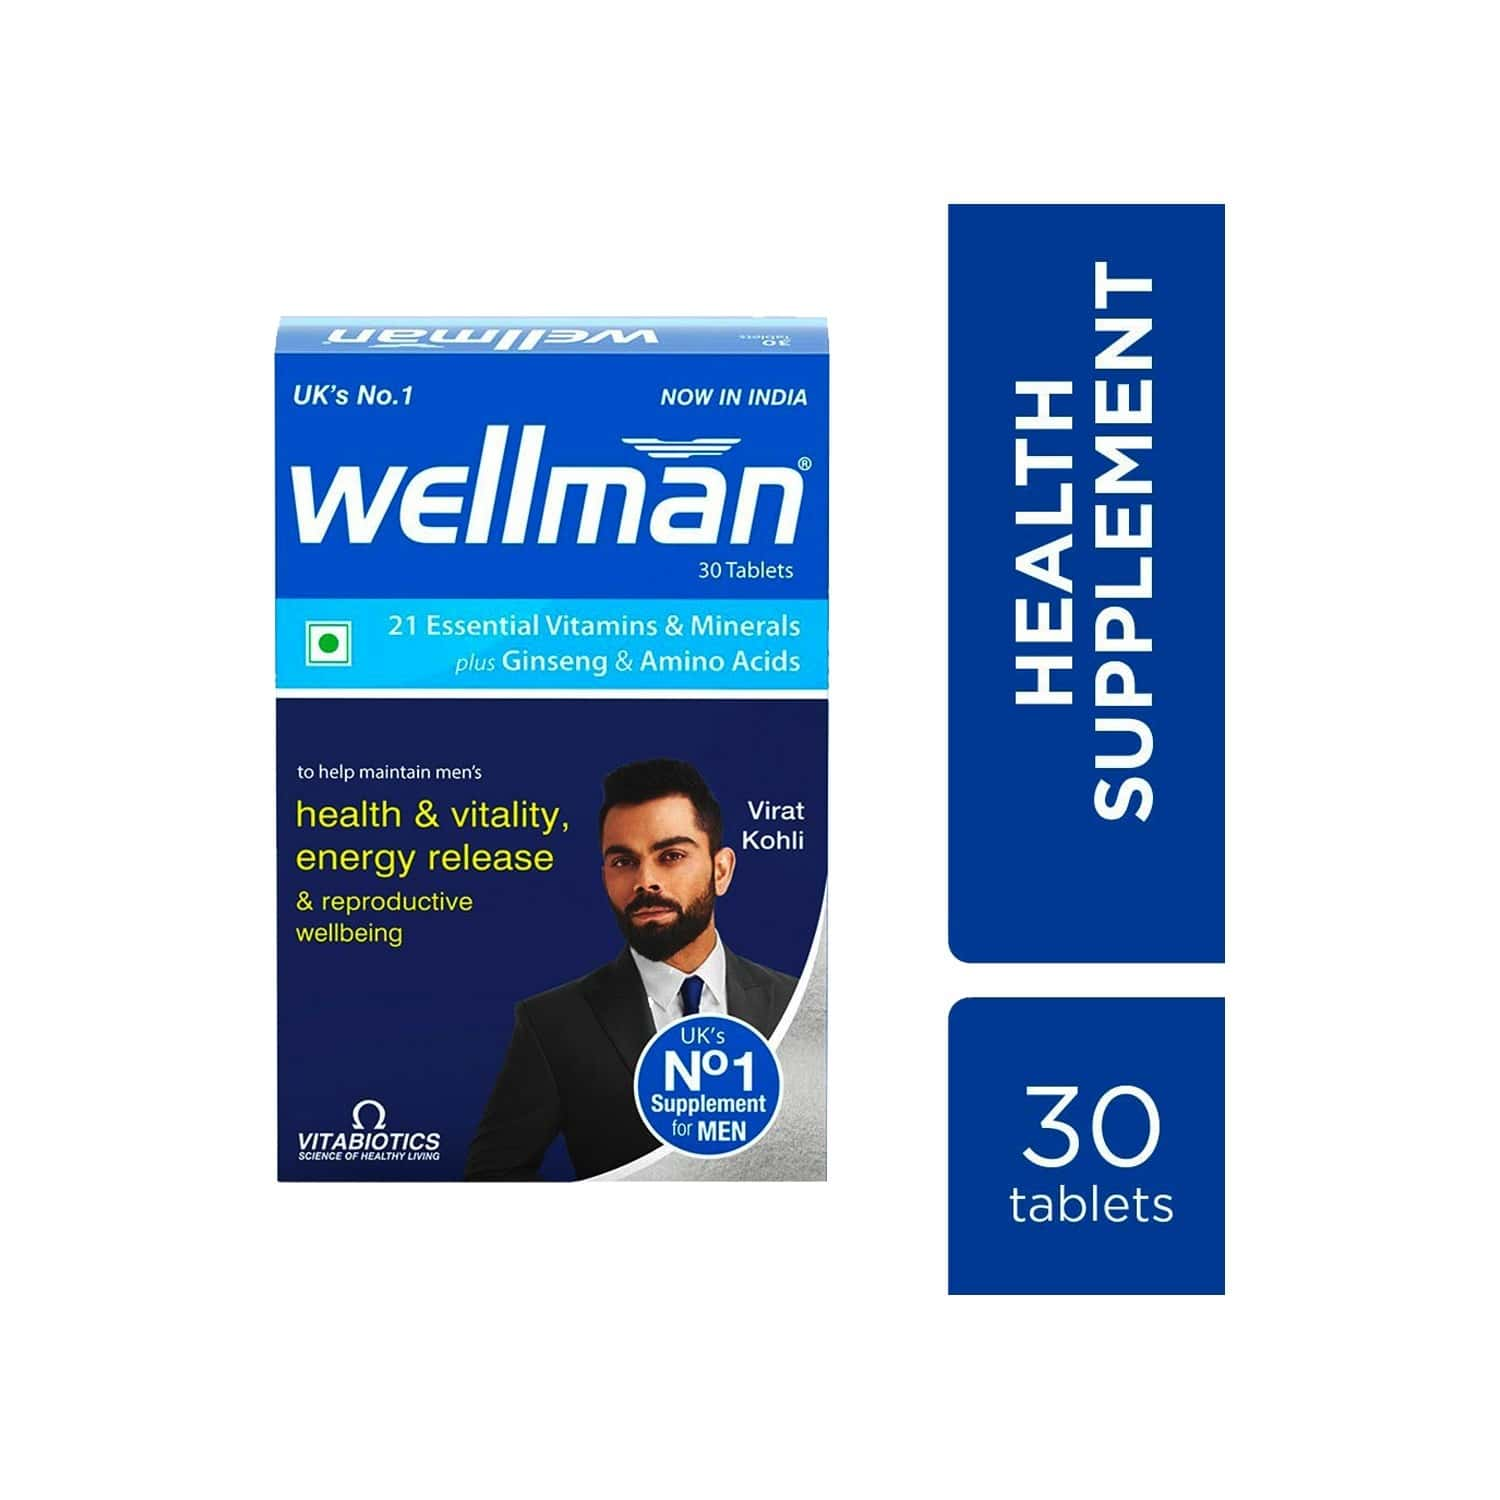 Wellman - Health Supplements (21 Essential Vitamins And Minerals, With Added Ginseng And Amino Acids) With Wellman 30 Tablet Free